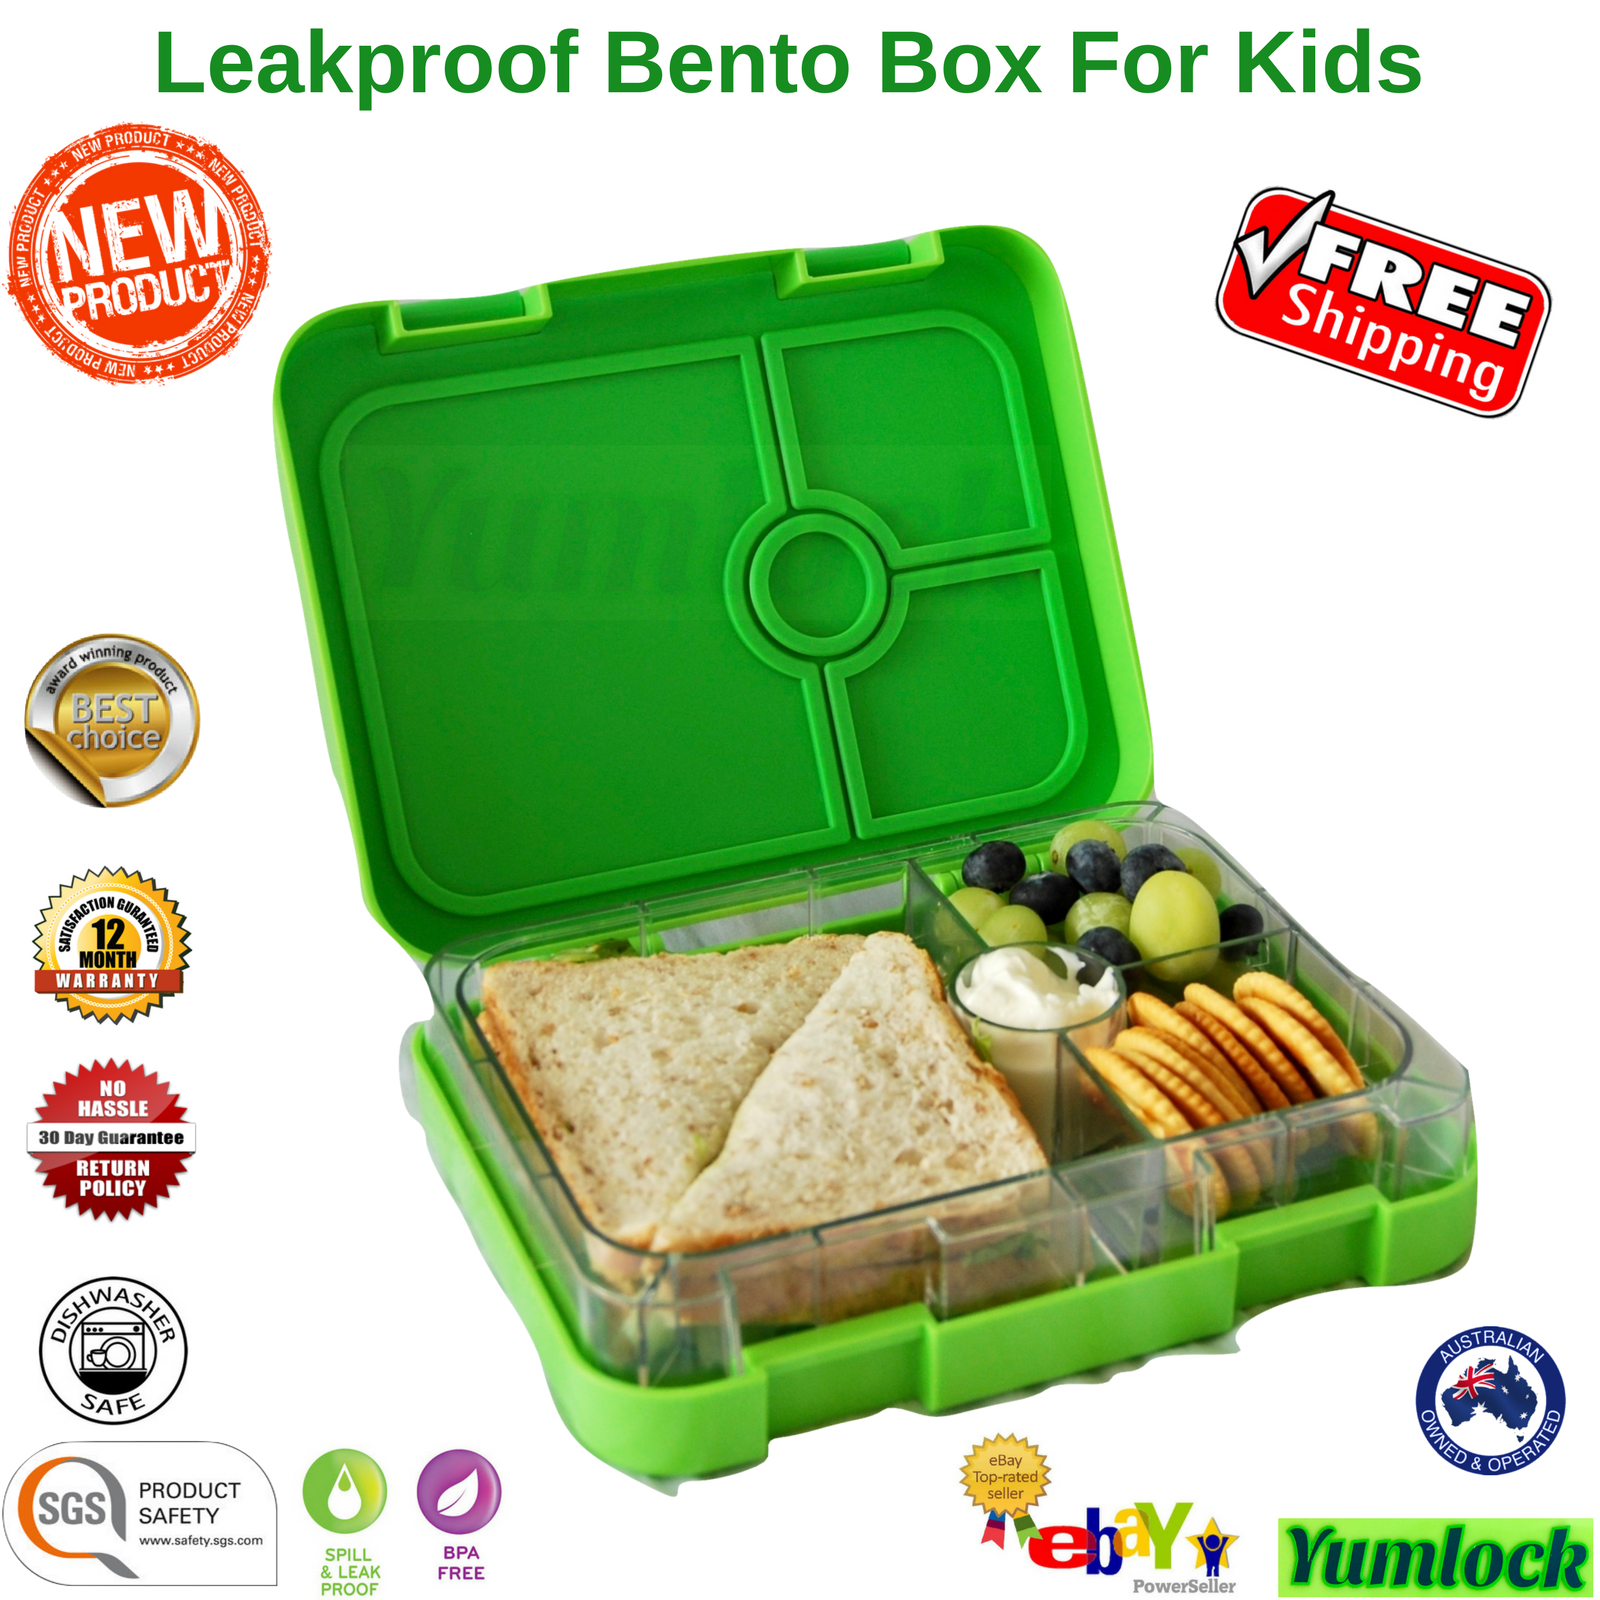 bento lunch box food container school picnic 4 leakproof compartments by yumlock ebay. Black Bedroom Furniture Sets. Home Design Ideas